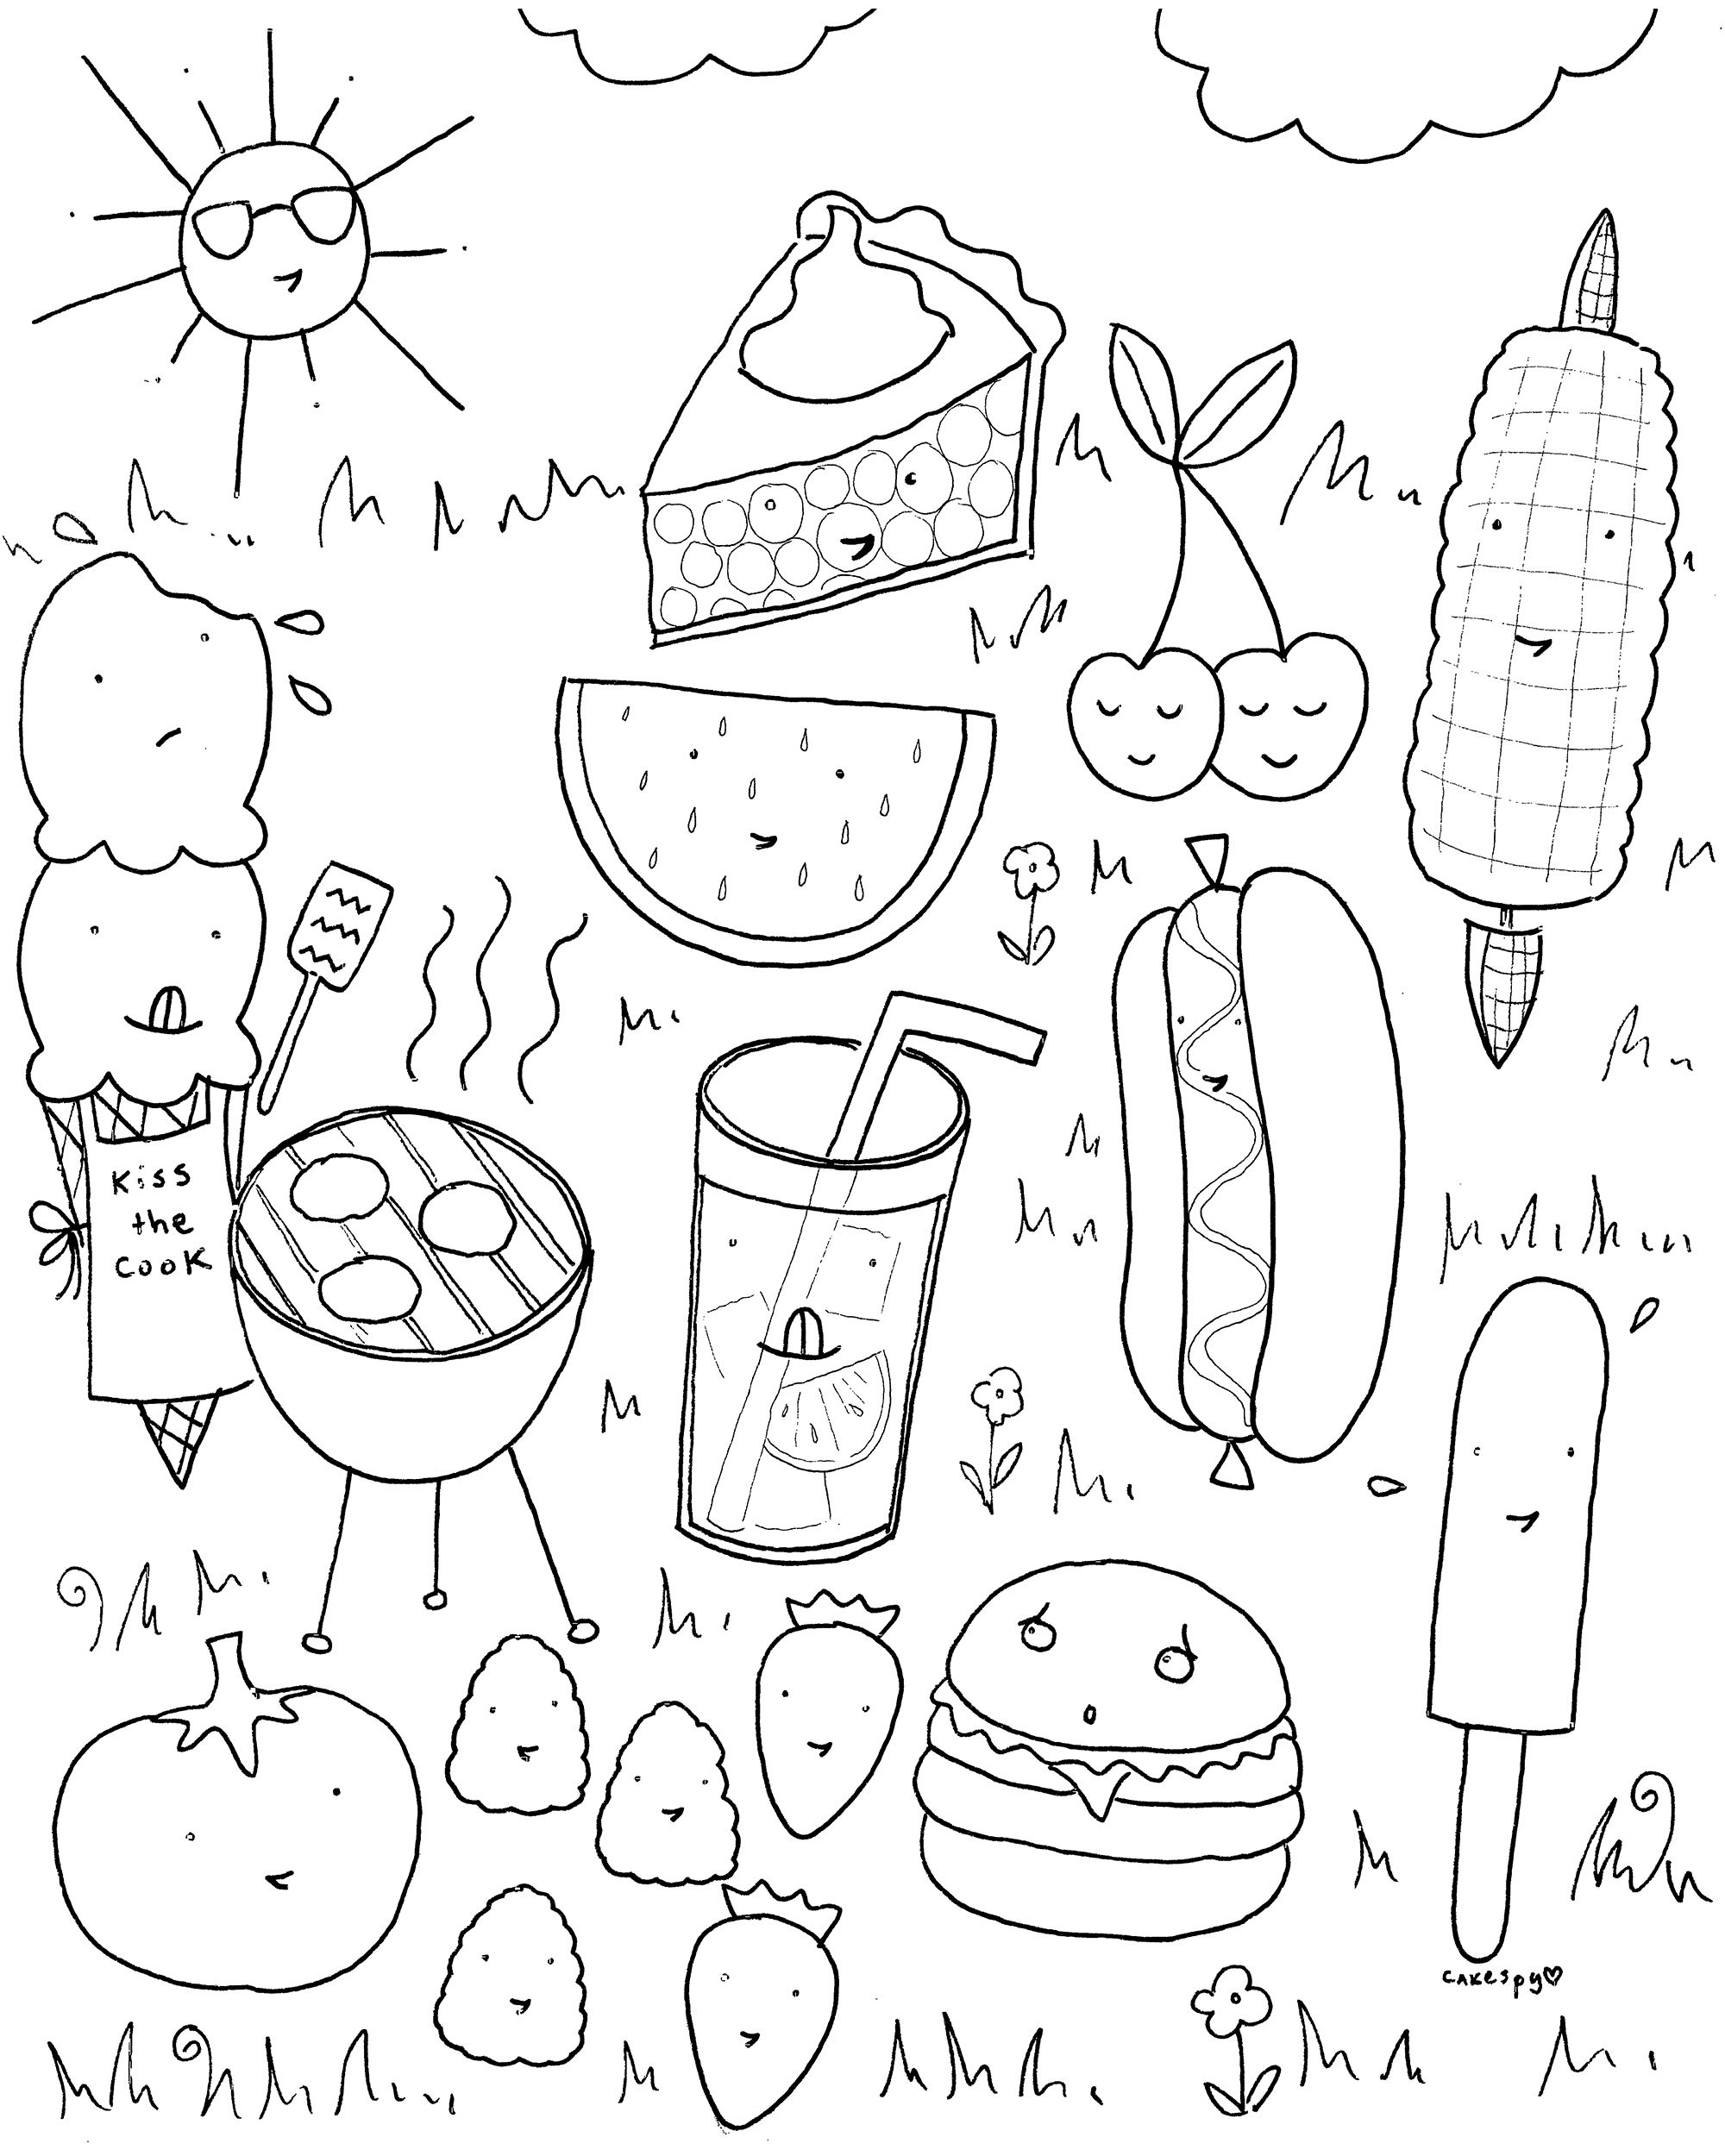 worksheet Free Coloring Worksheets free downloadable summer fun coloring book pages pages